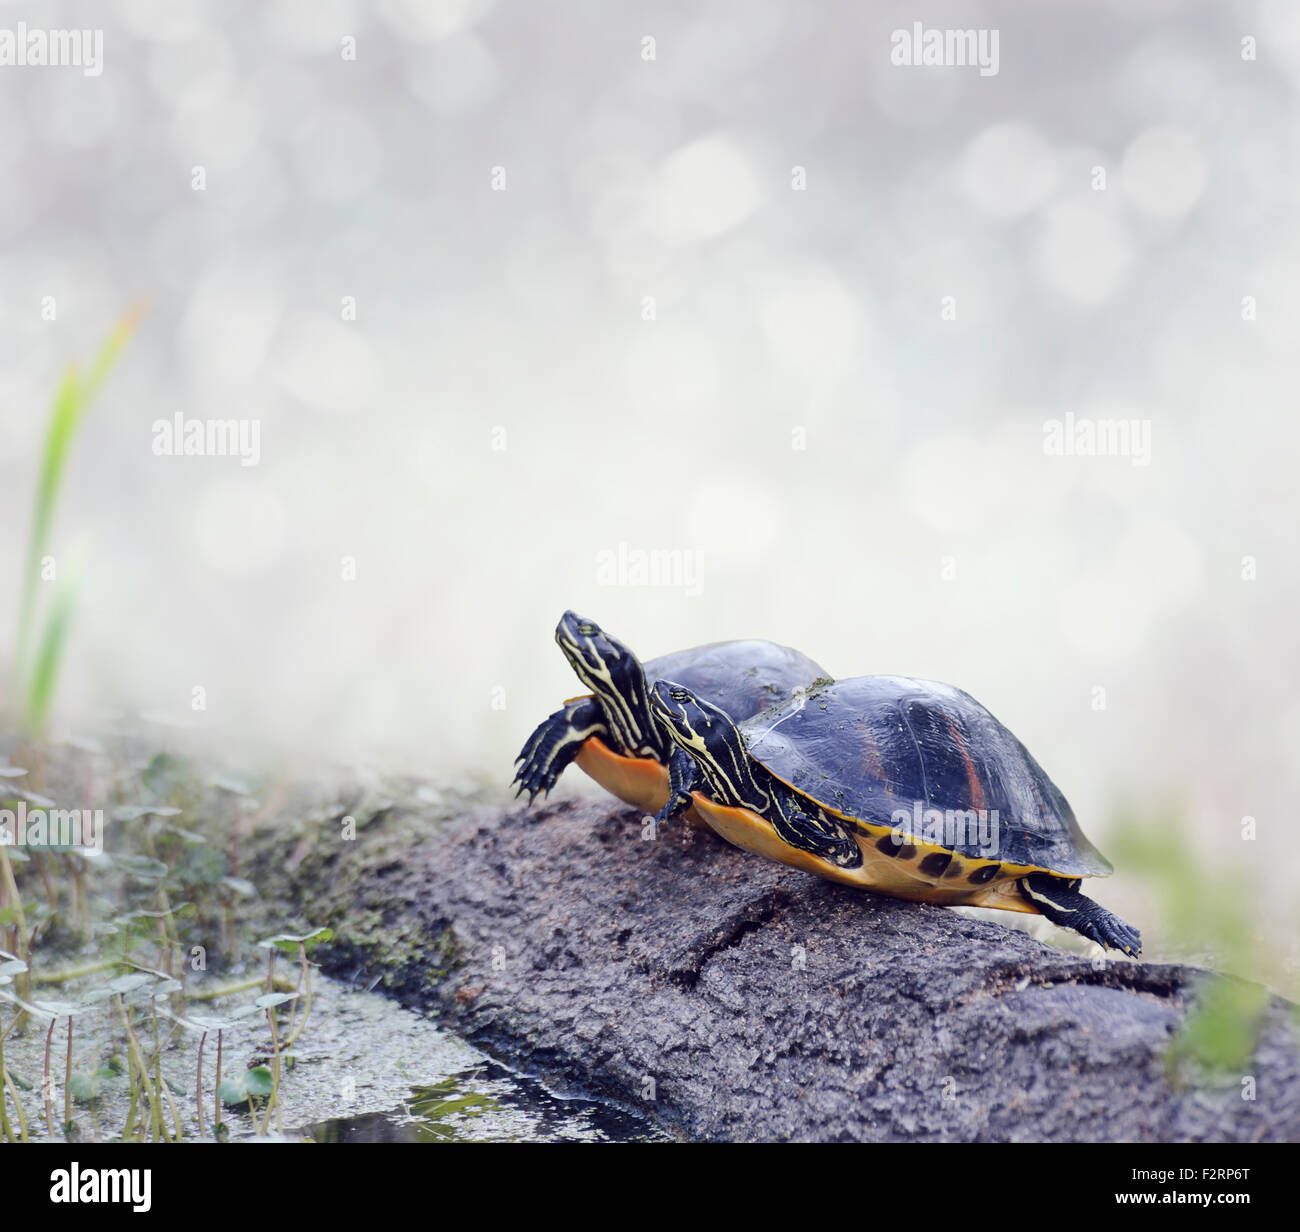 Florida Cooter Turtles On A Log Stock Photo